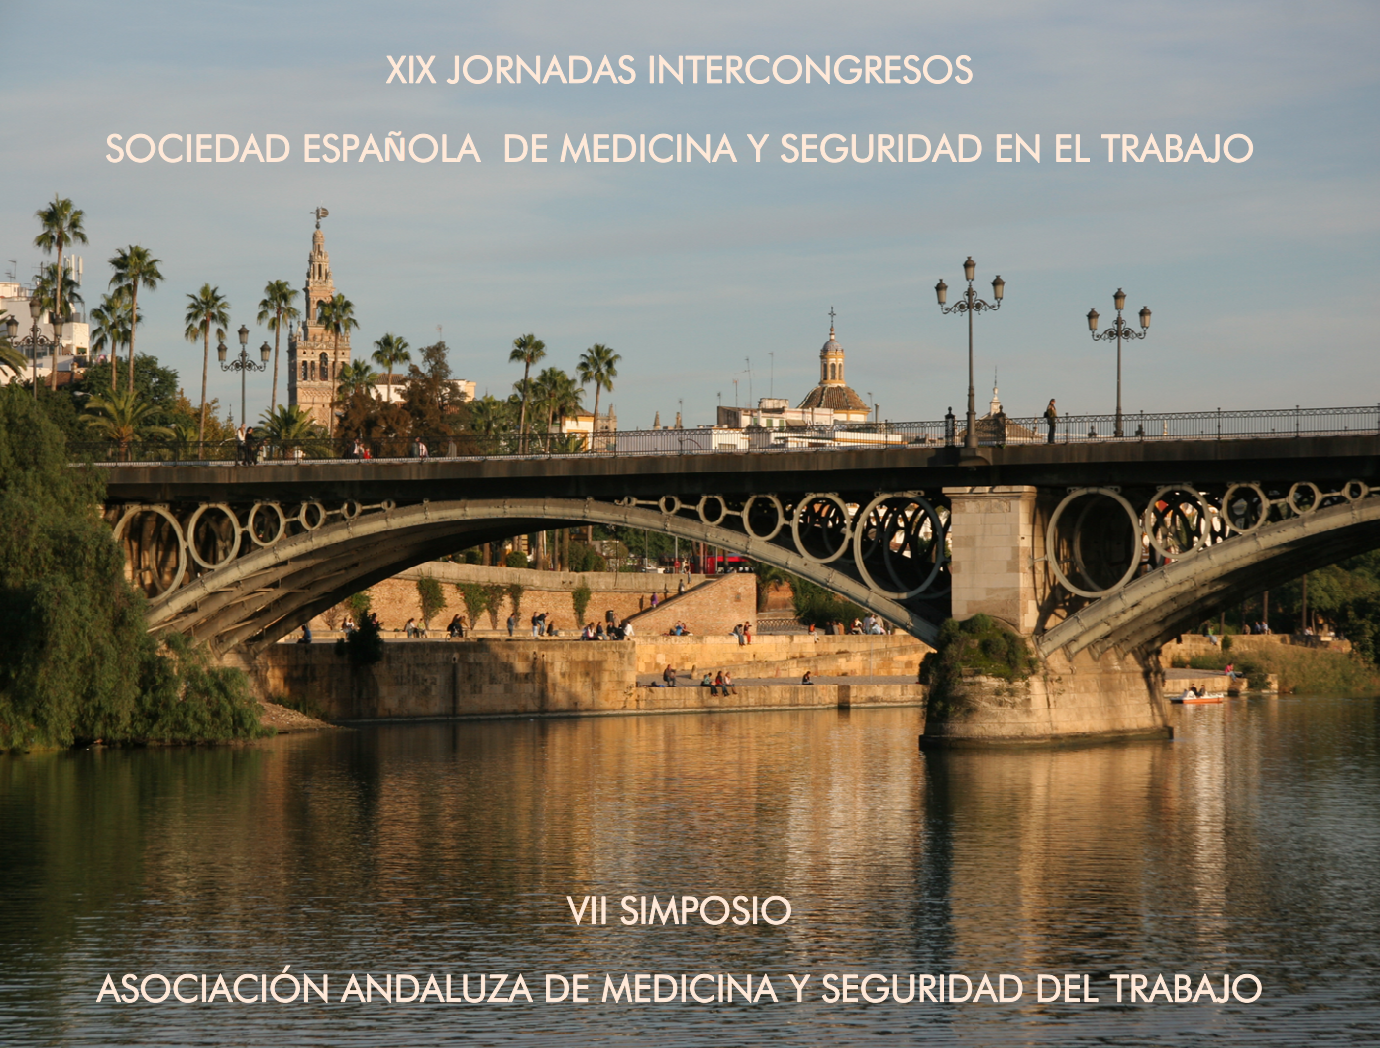 Jornada intercongreso